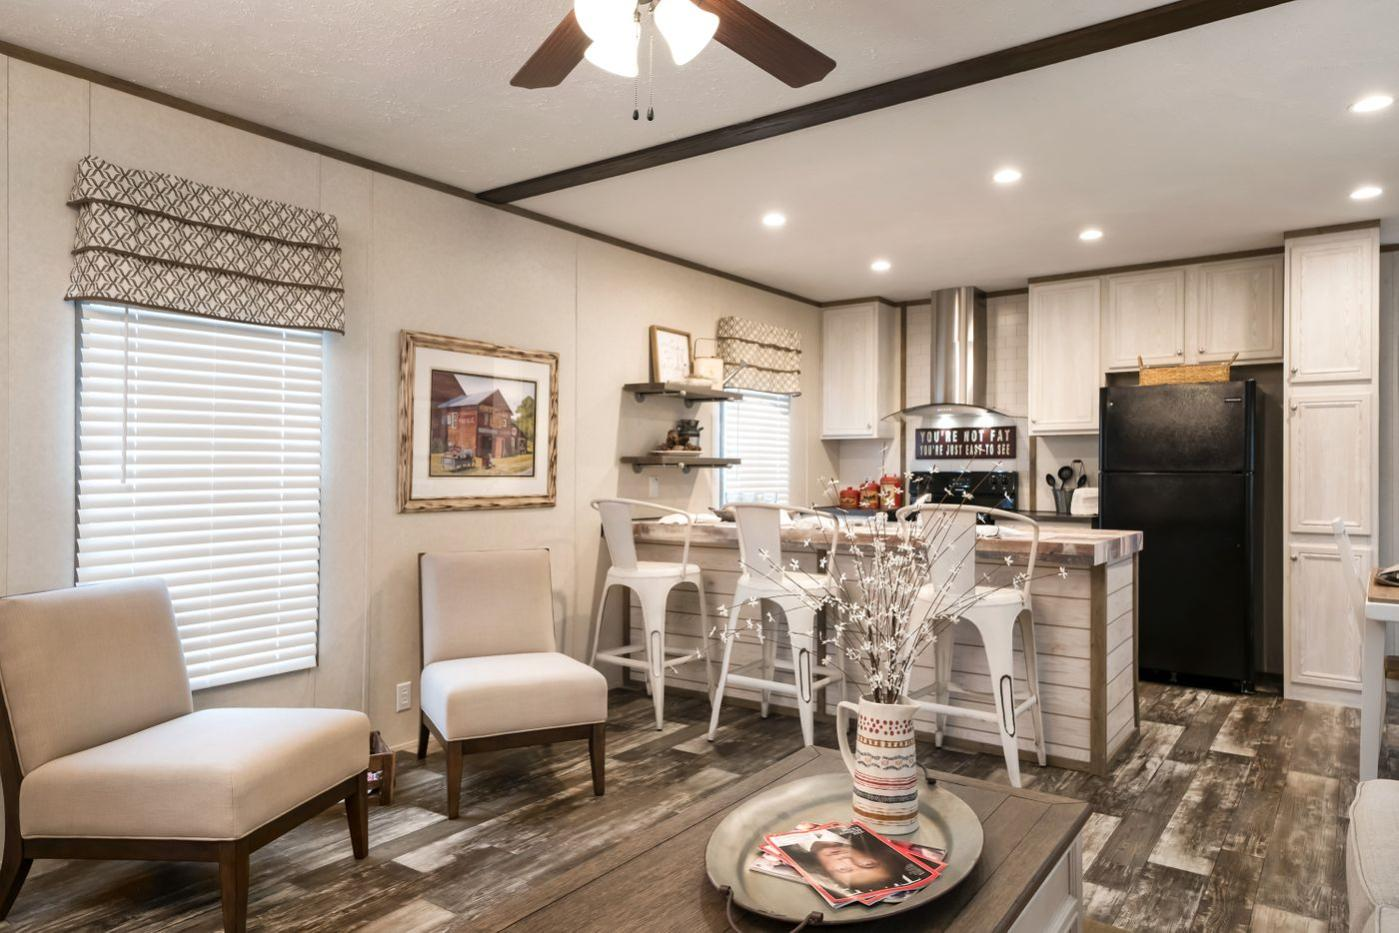 Kitchen of the Edge Manufactured Home from Worldwide Mobile Homes in Lumberton, Texas